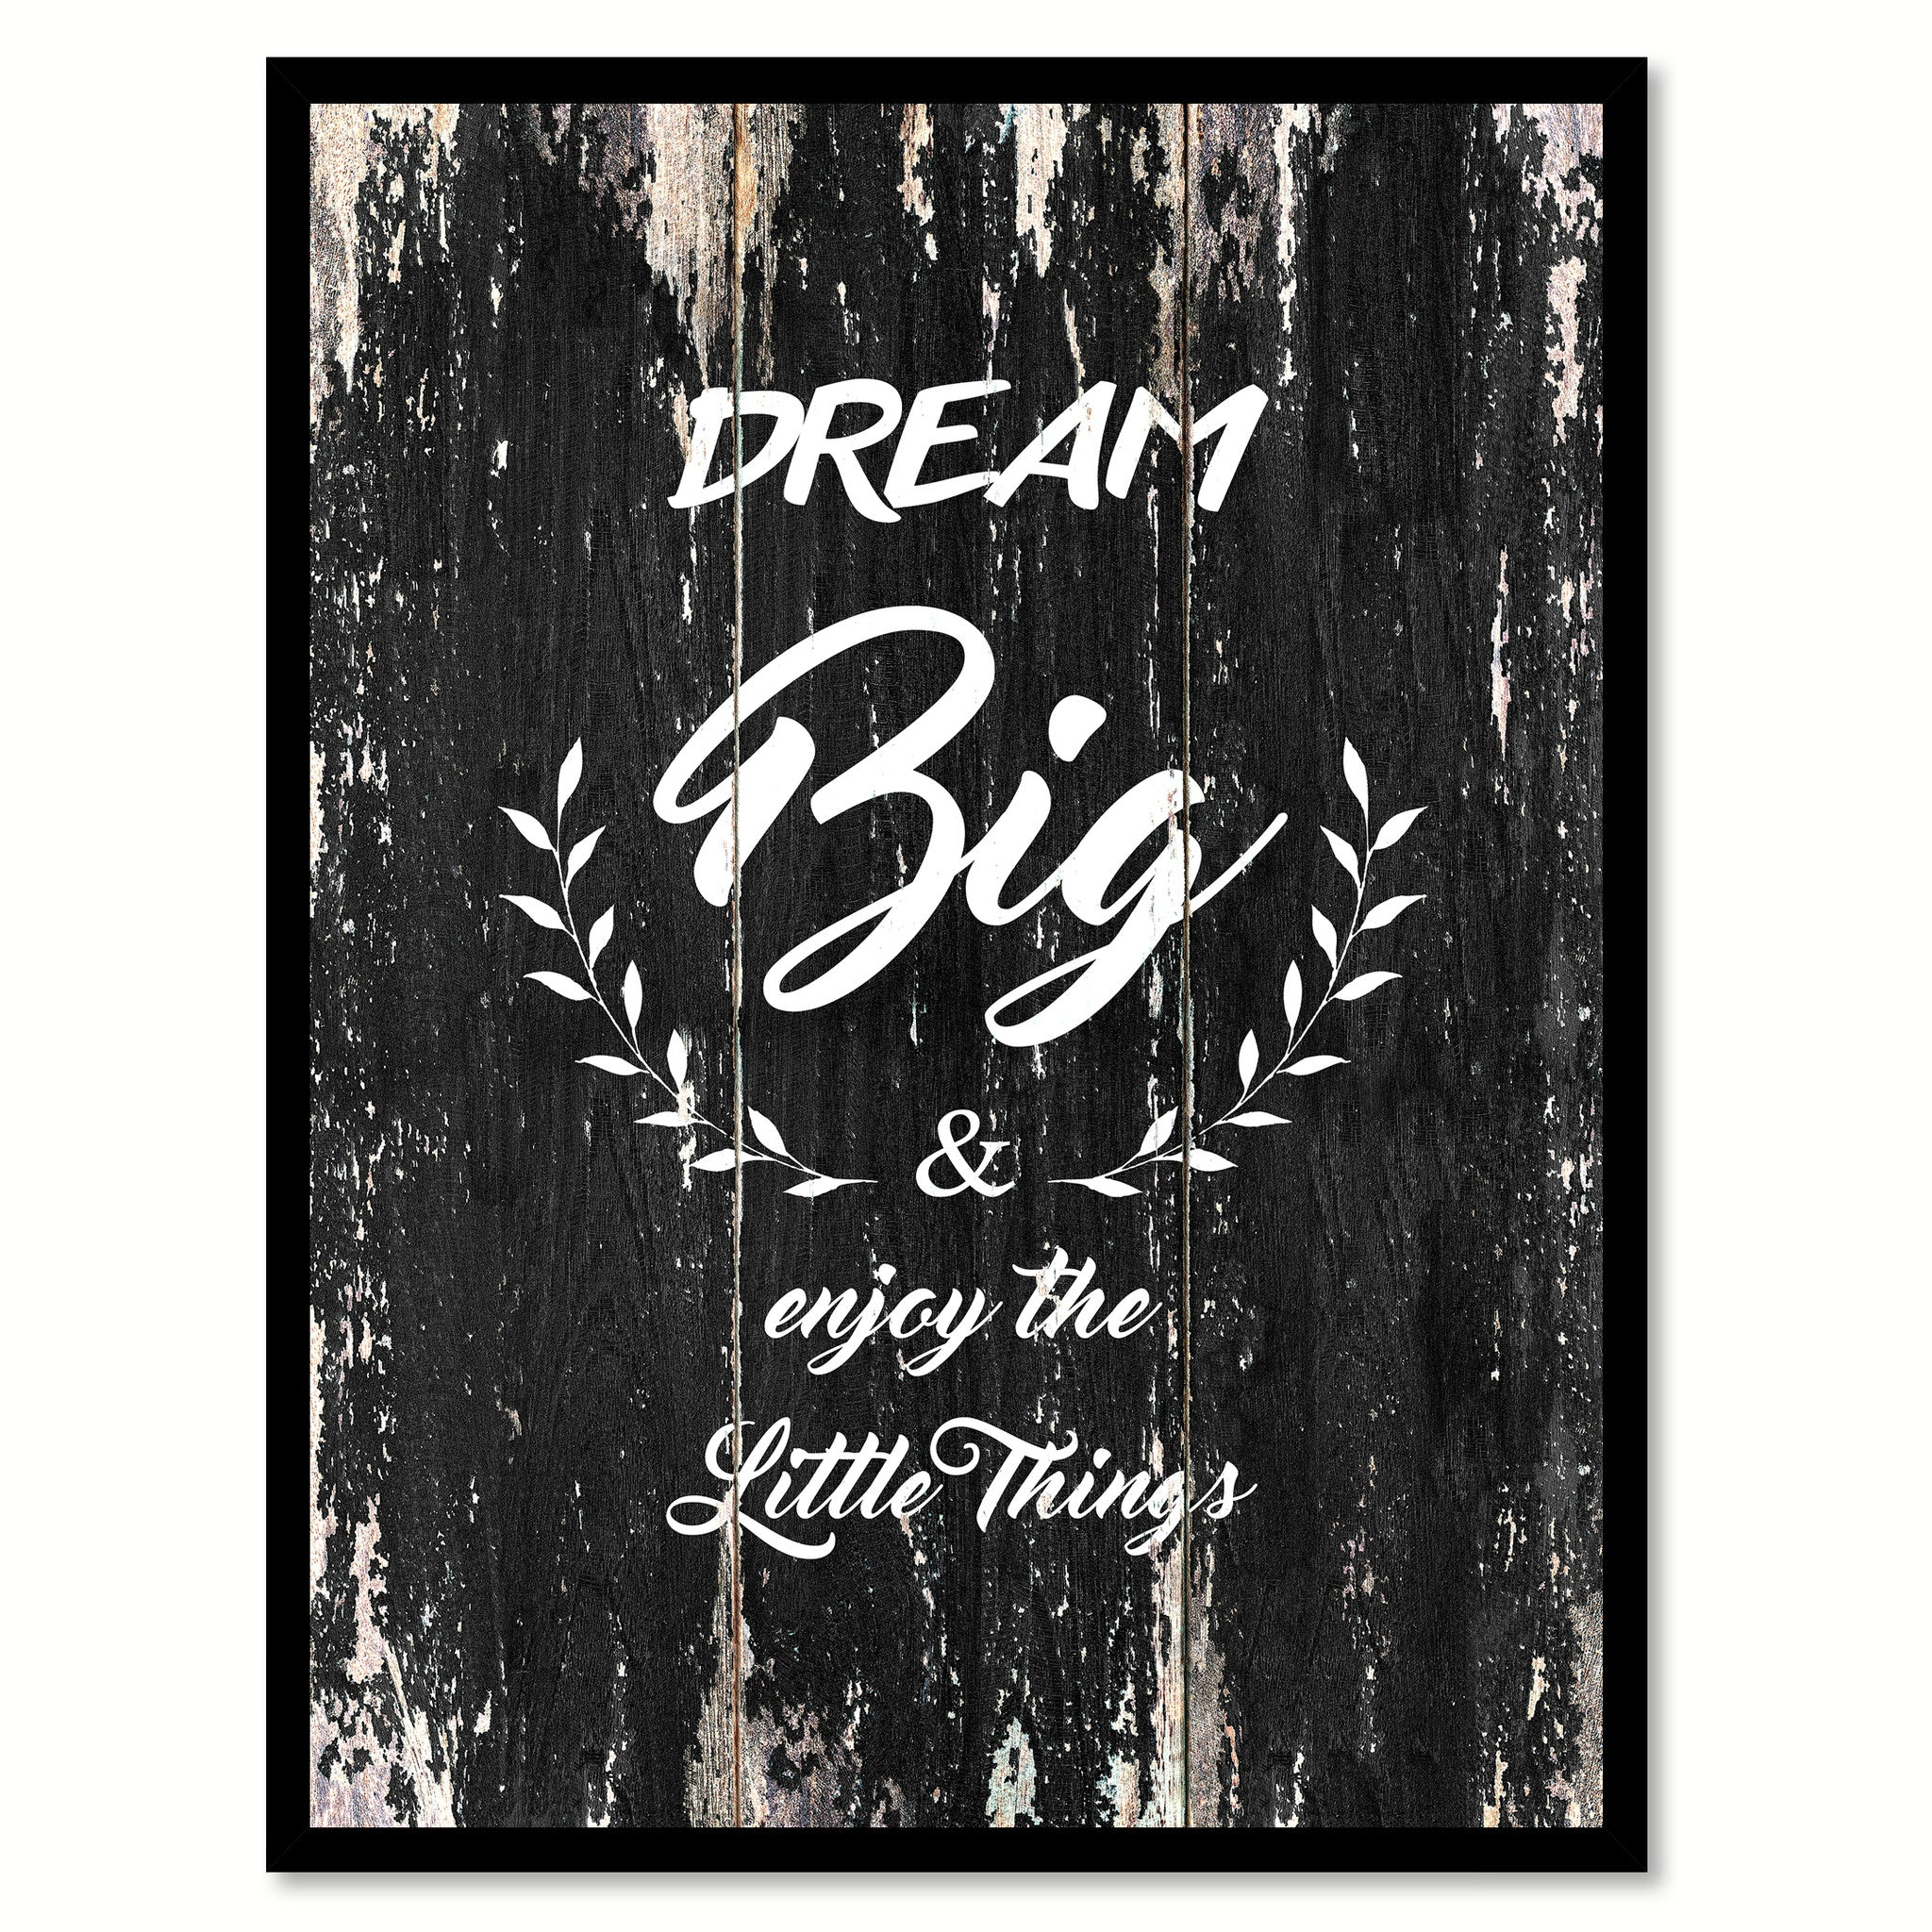 Dream big & enjoy the little things Motivational Quote Saying Canvas Print with Picture Frame Home Decor Wall Art